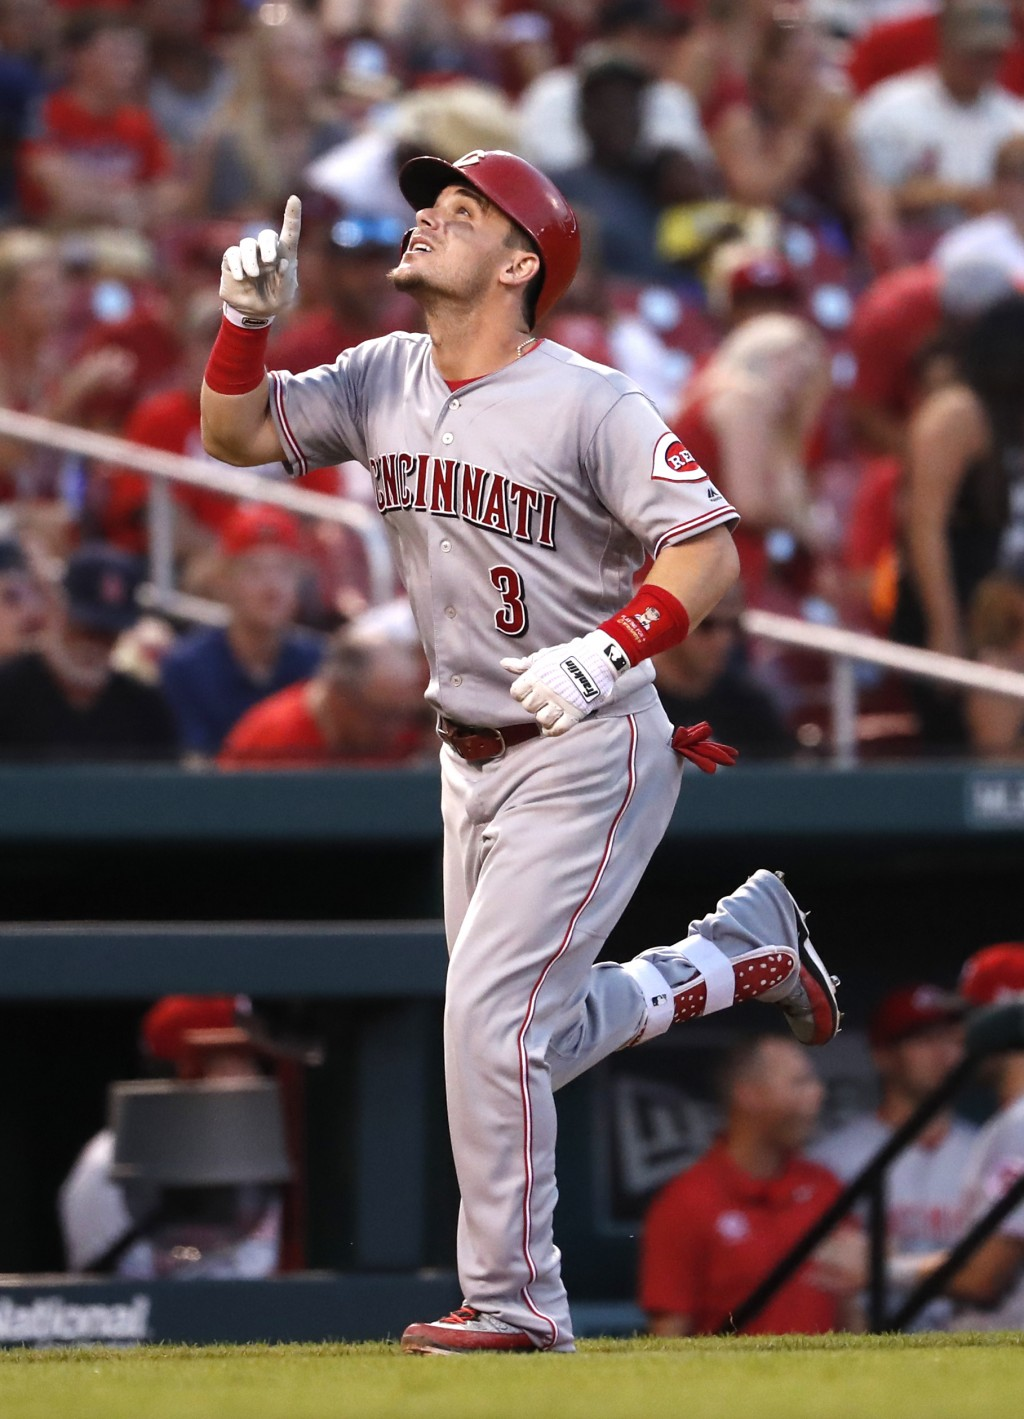 Cincinnati Reds' Scooter Gennett points skyward as he rounds the bases after hitting a solo home run during the third inning of a baseball game agains